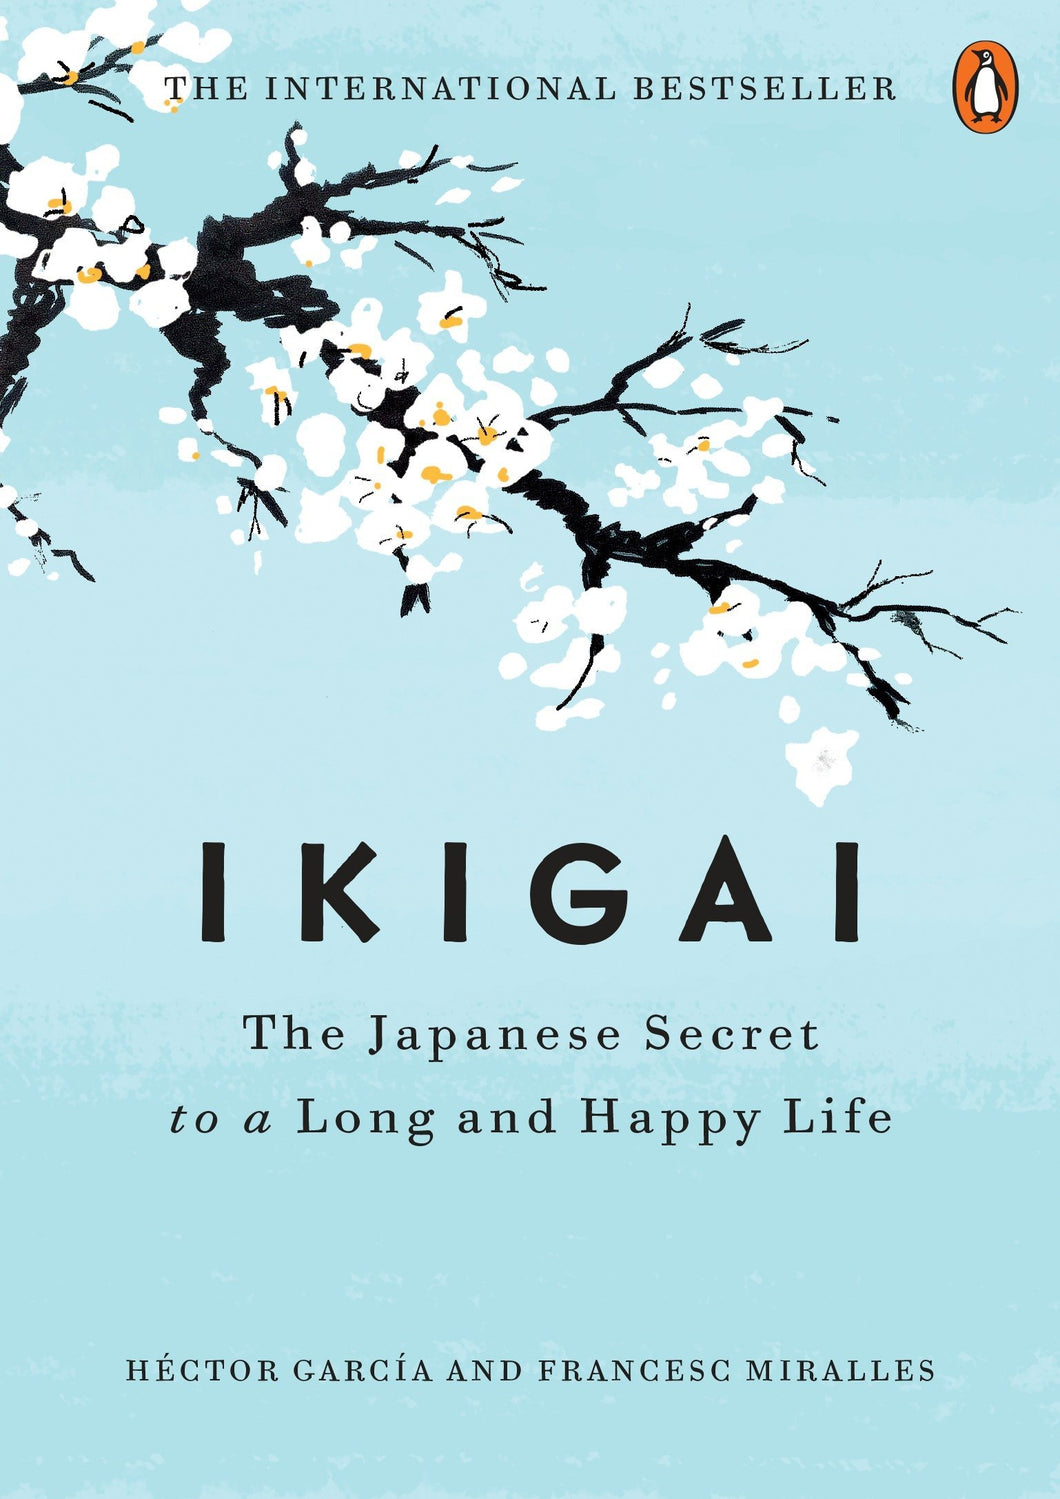 Ikigai: The Japanese Secret to a Long and Happy Life - MINDFUL ZEBRA